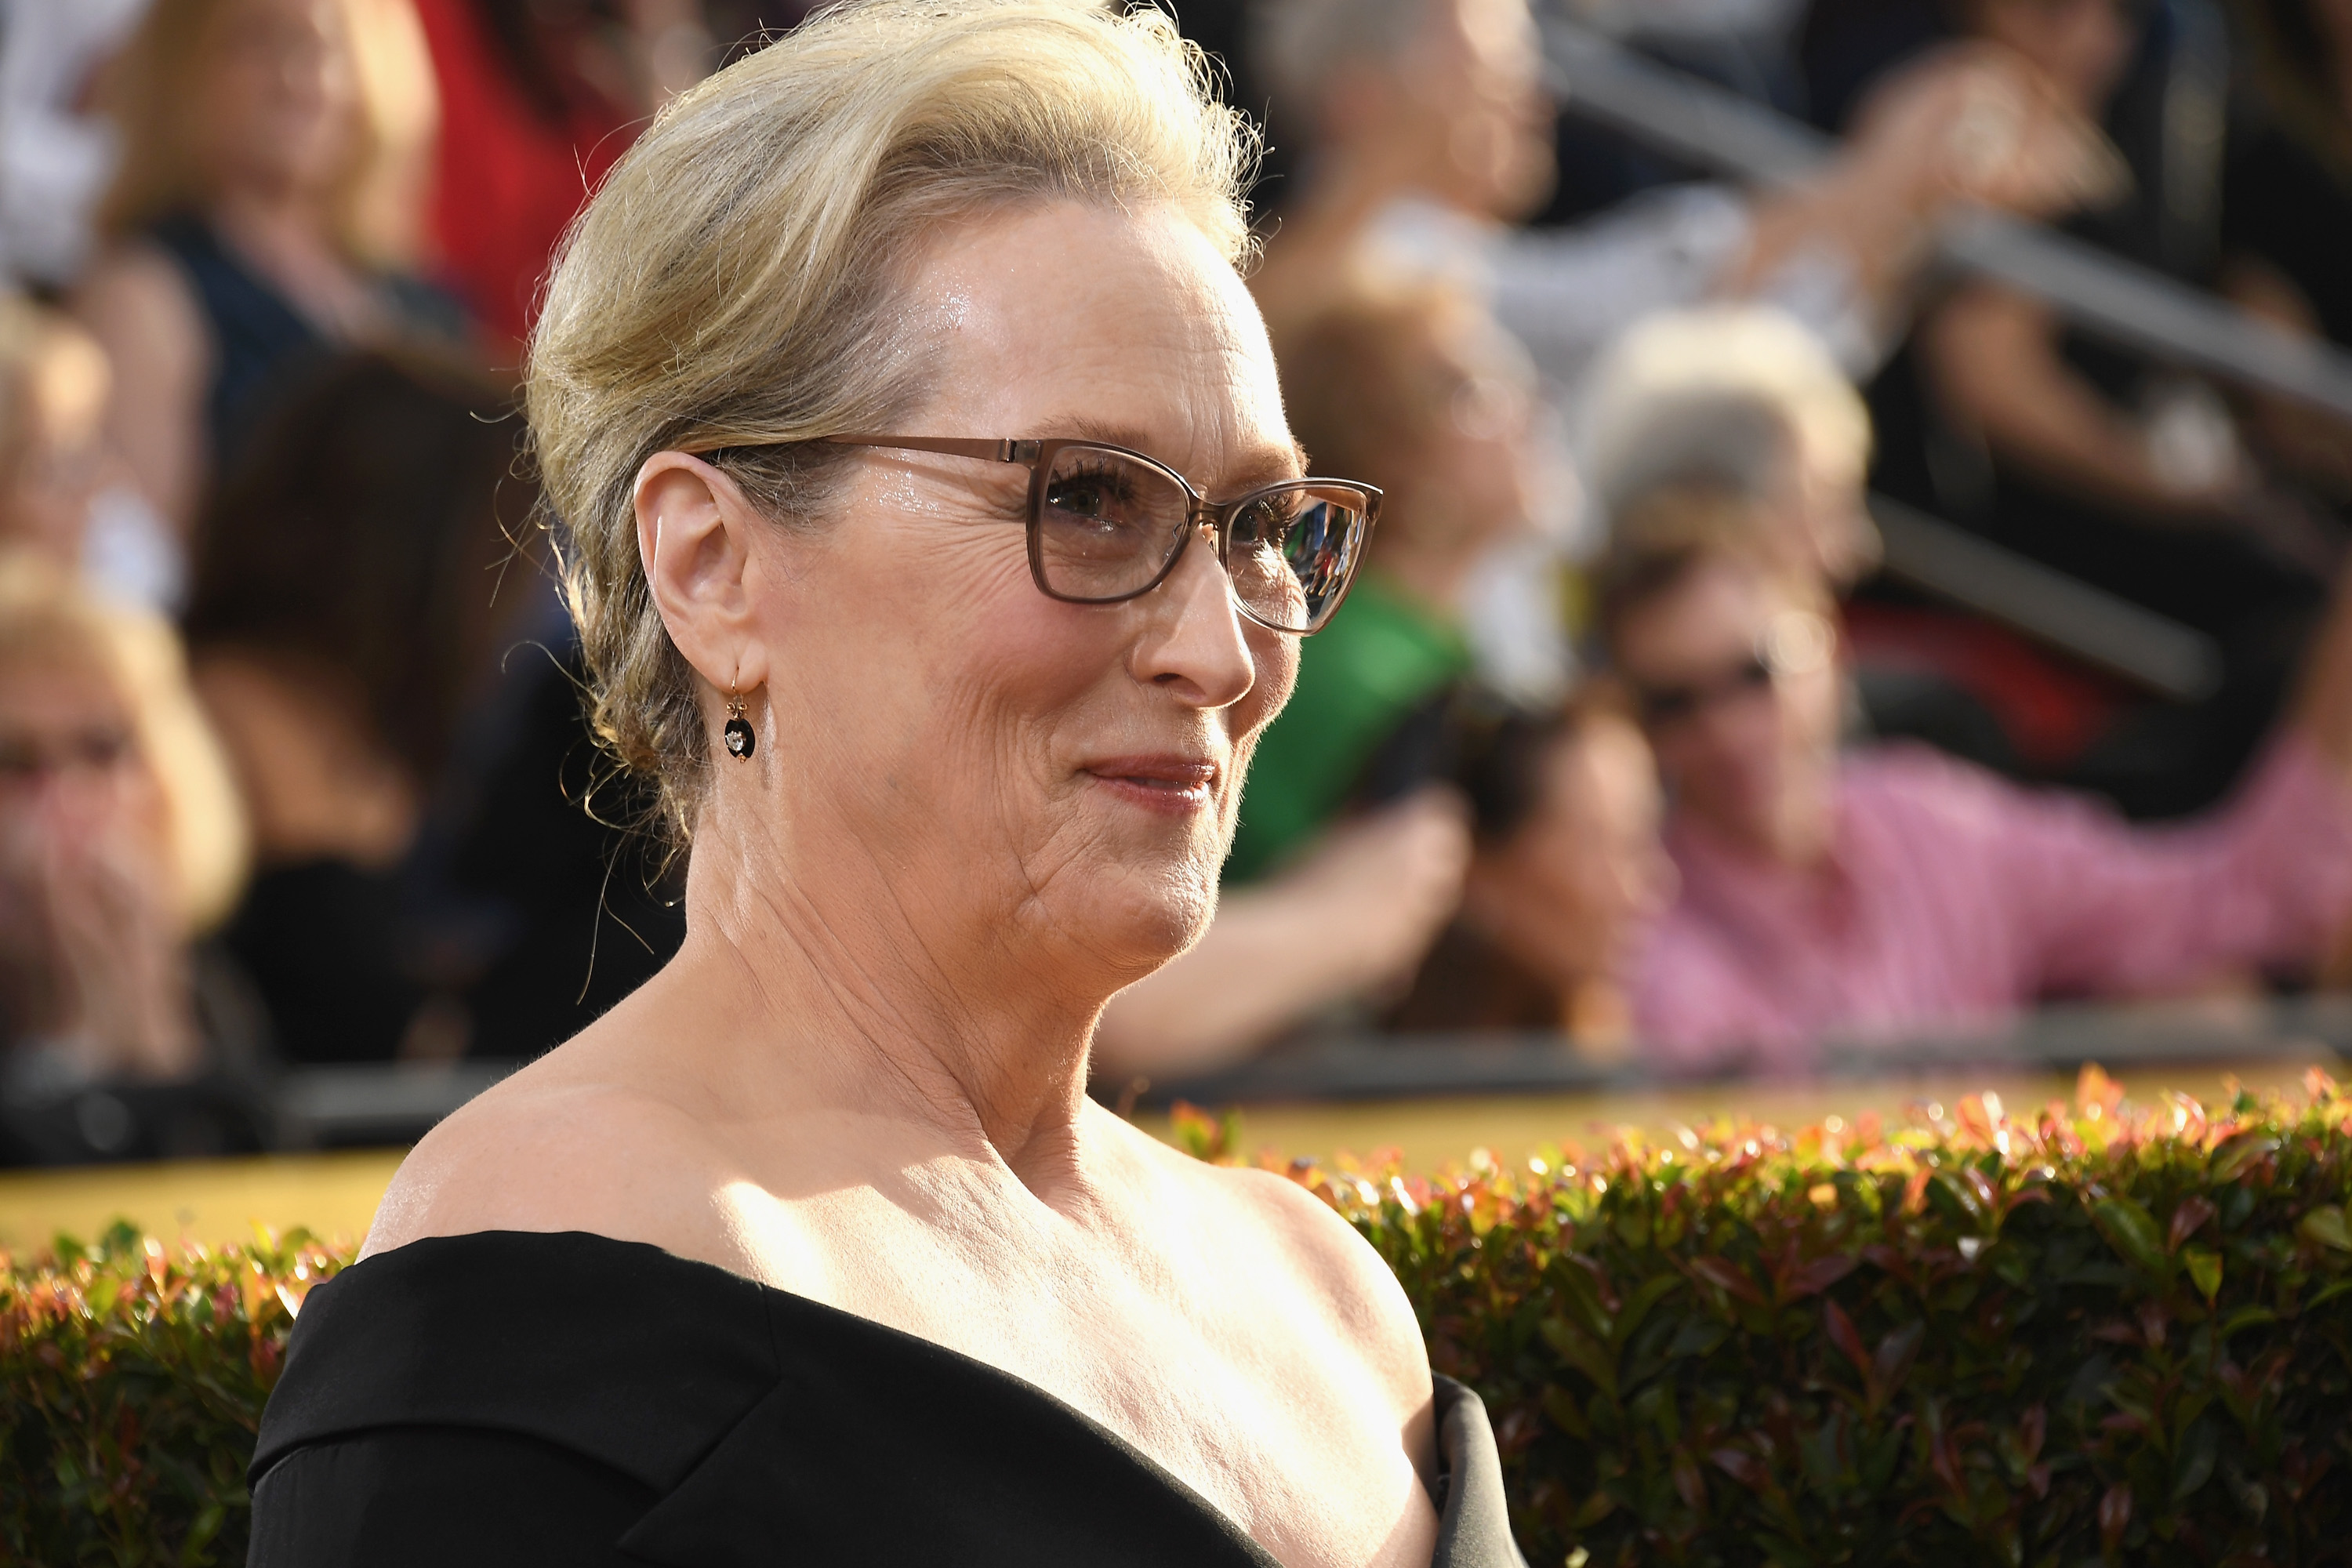 Meryl Streep arrives to the 75th Annual Golden Globe Awards held at the Beverly Hilton Hotel on Jan. 7, 2018.